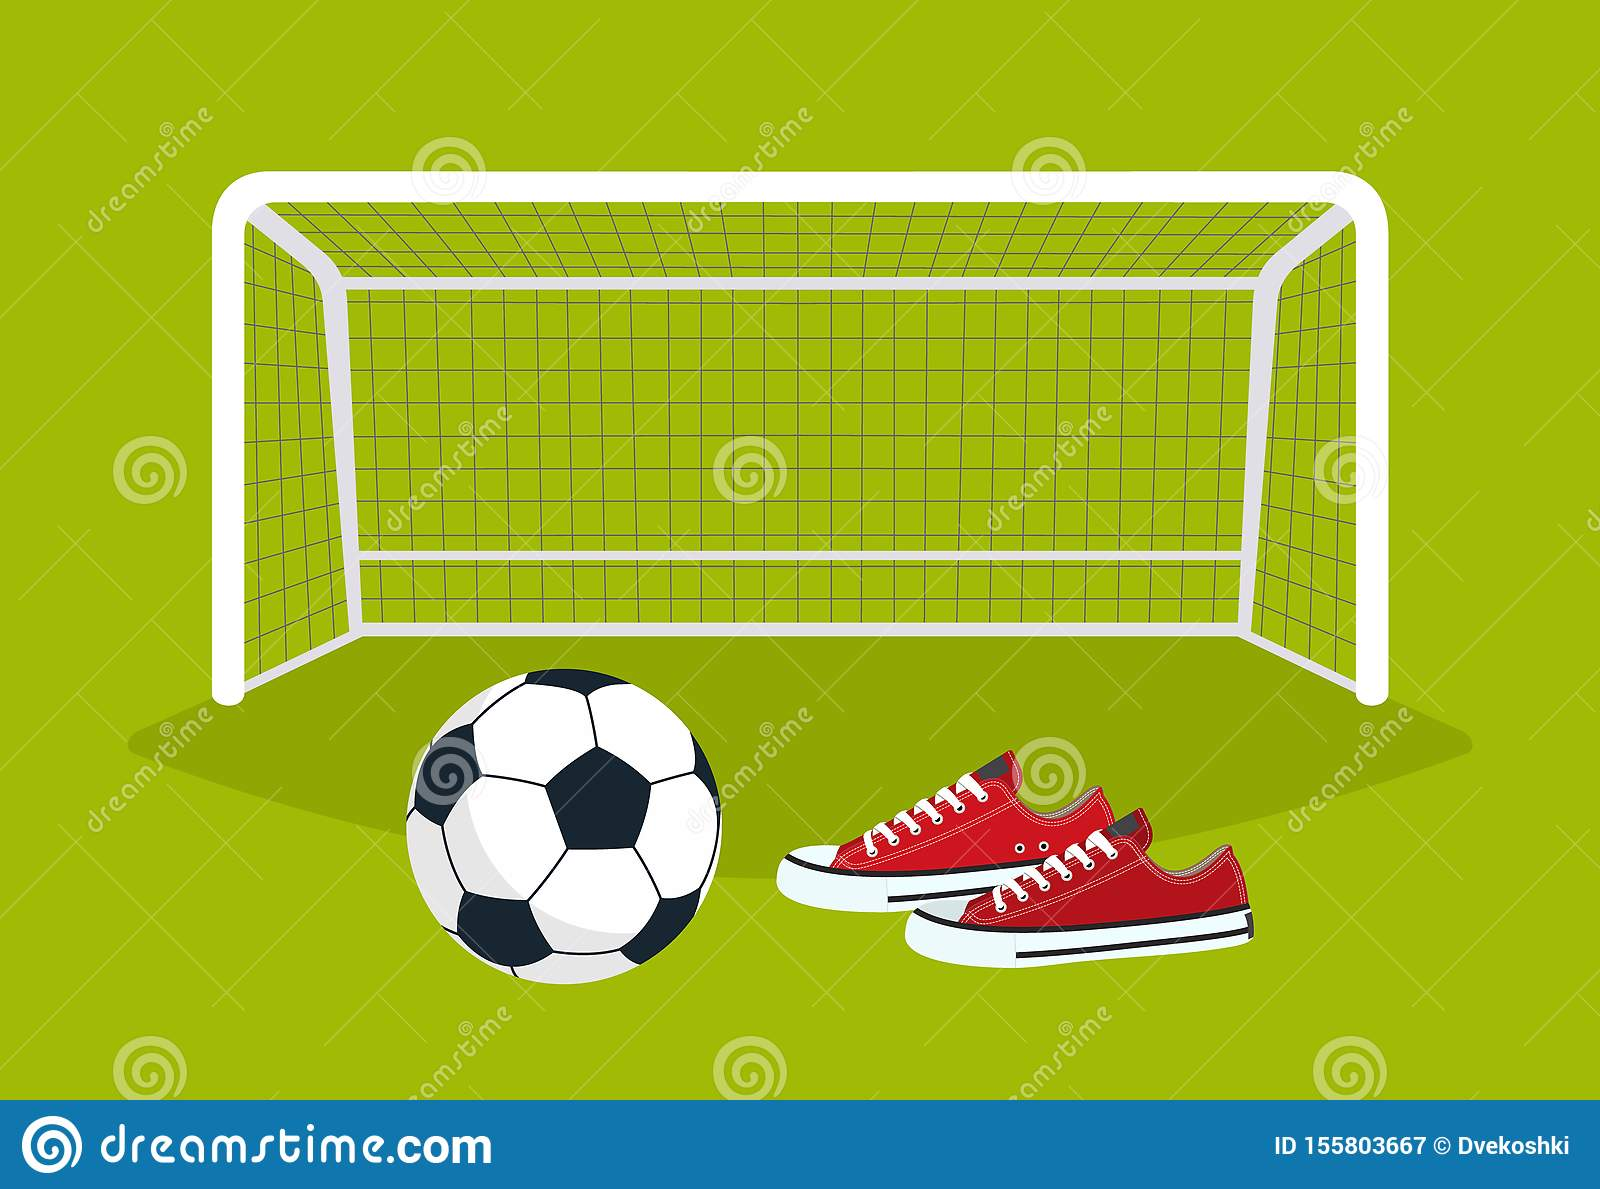 Football. Soccer ball and sneakers on the green field in front of the gate. Vector illustration